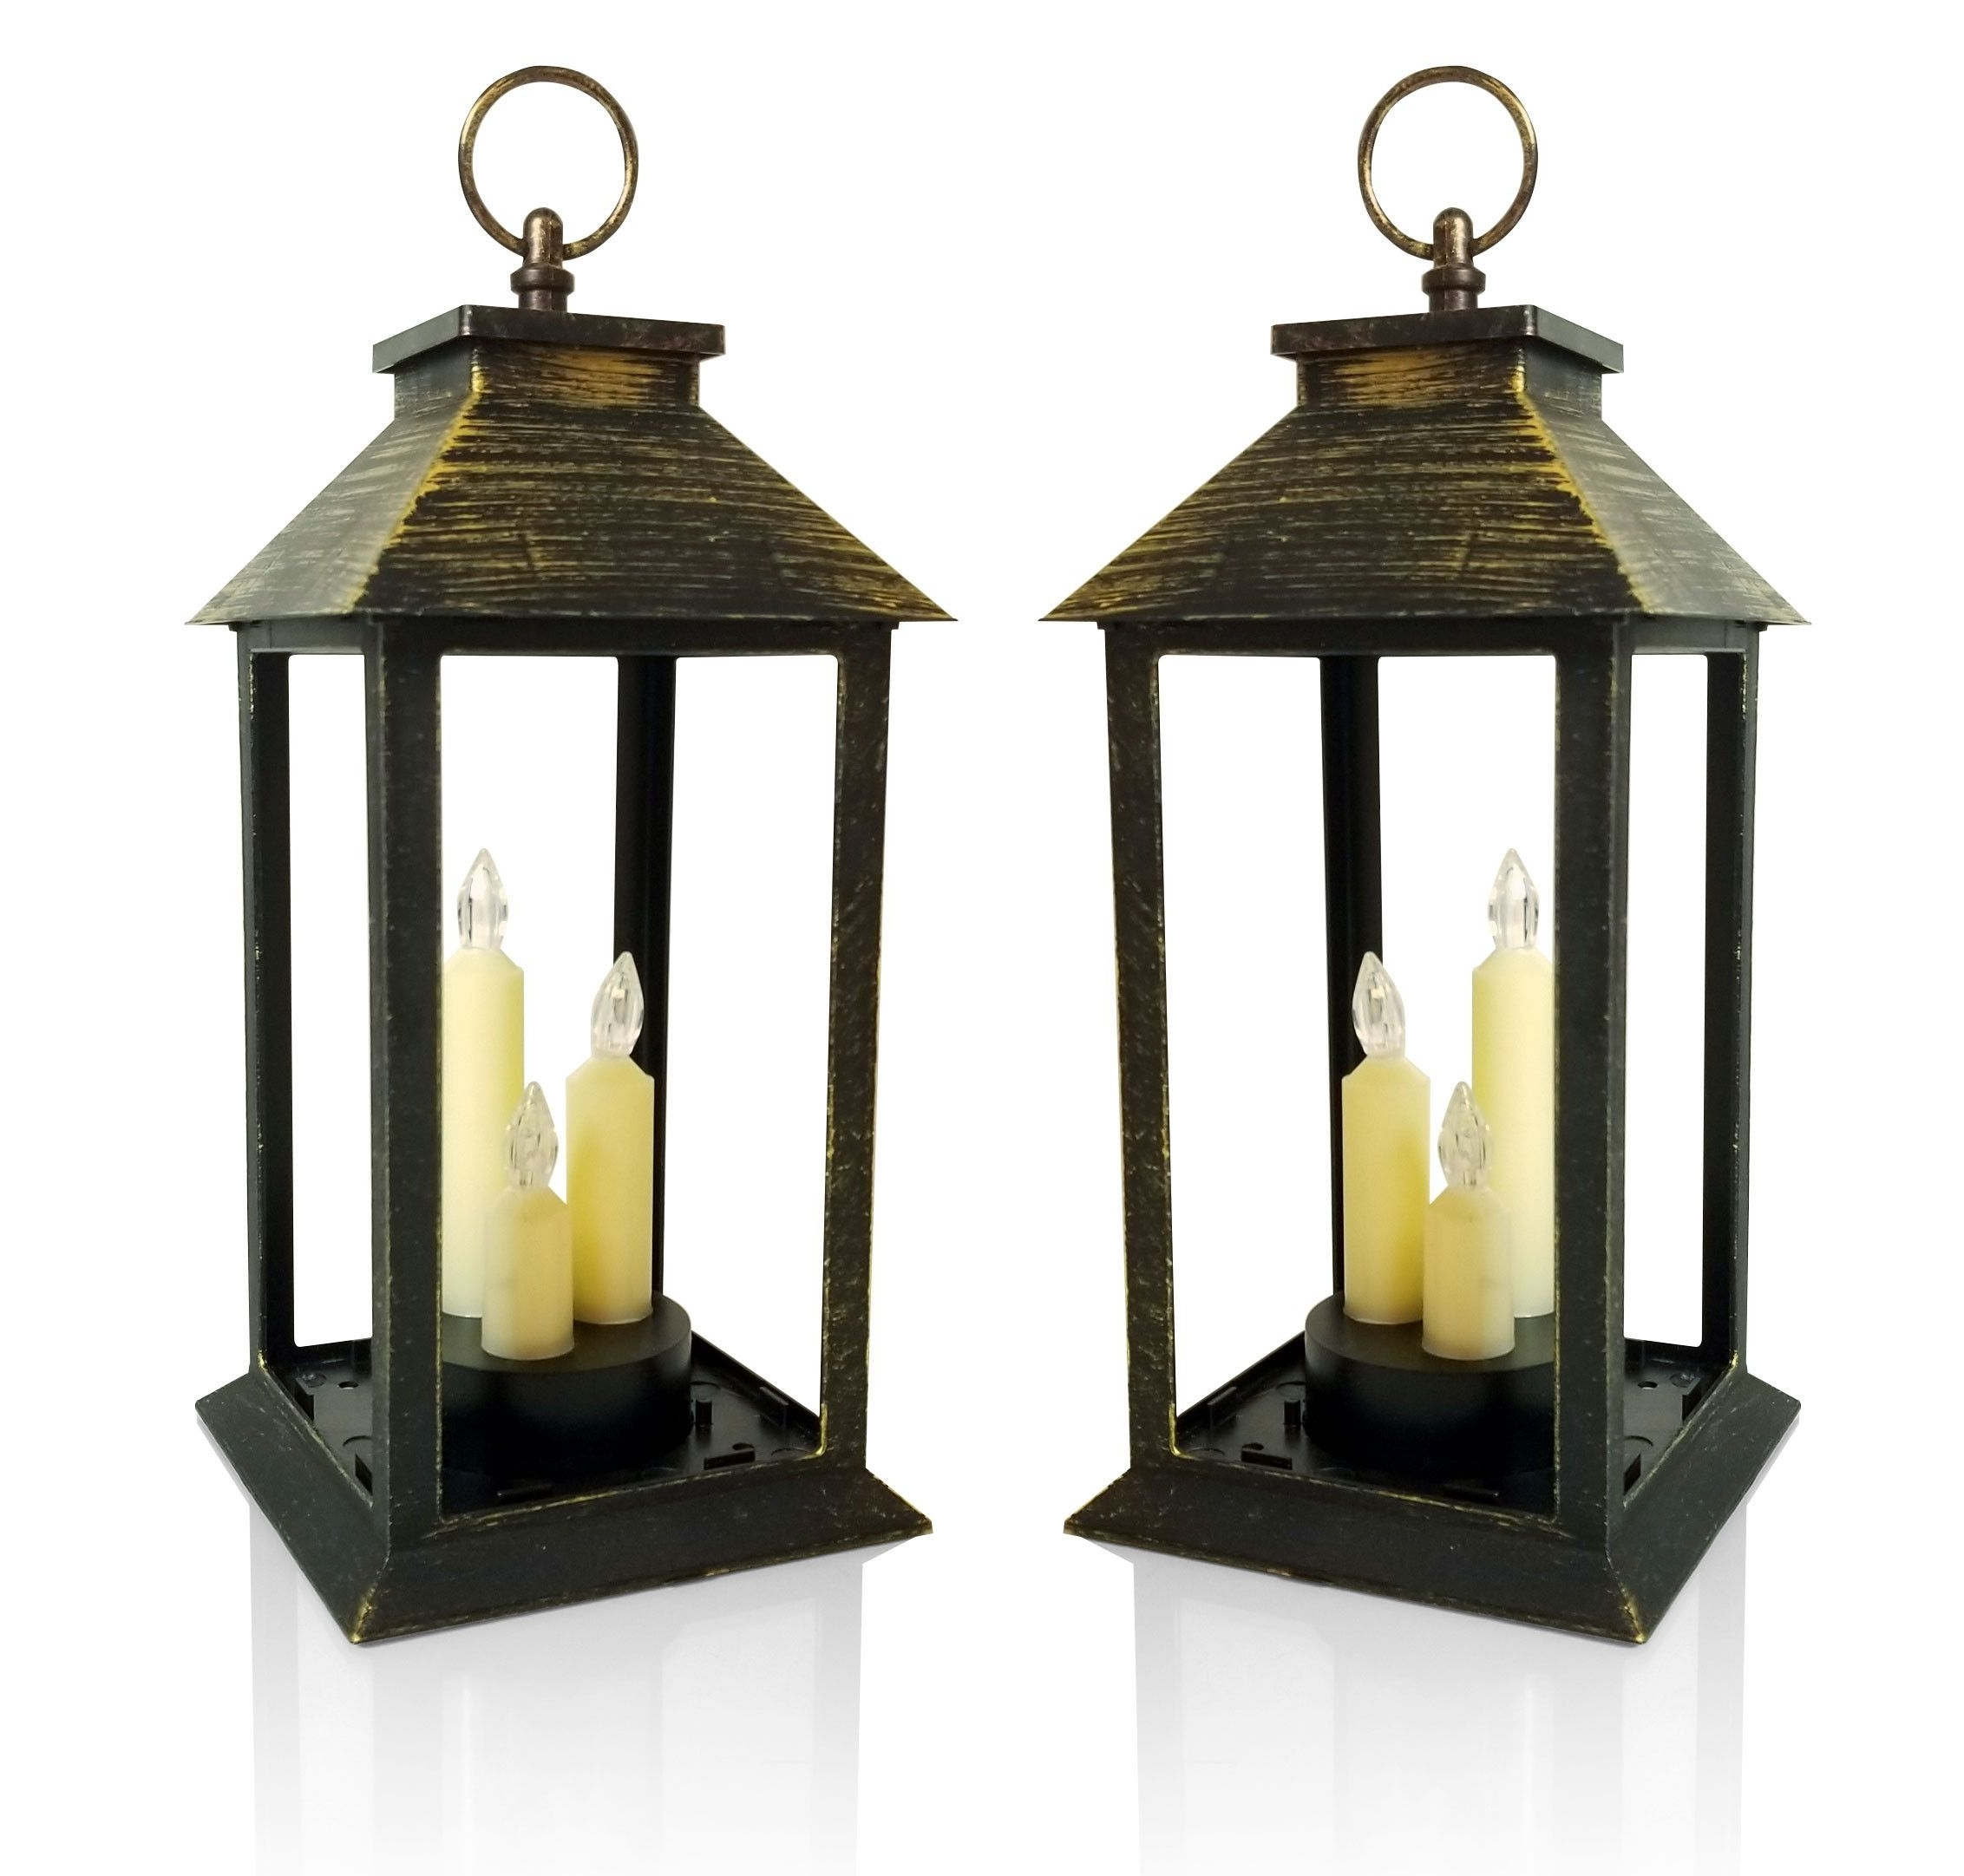 Outdoor Lanterns With Led Candles Throughout Latest Candle Lanterns – Set Of Antique Gold Lanterns With 3 Led Taper (View 9 of 20)